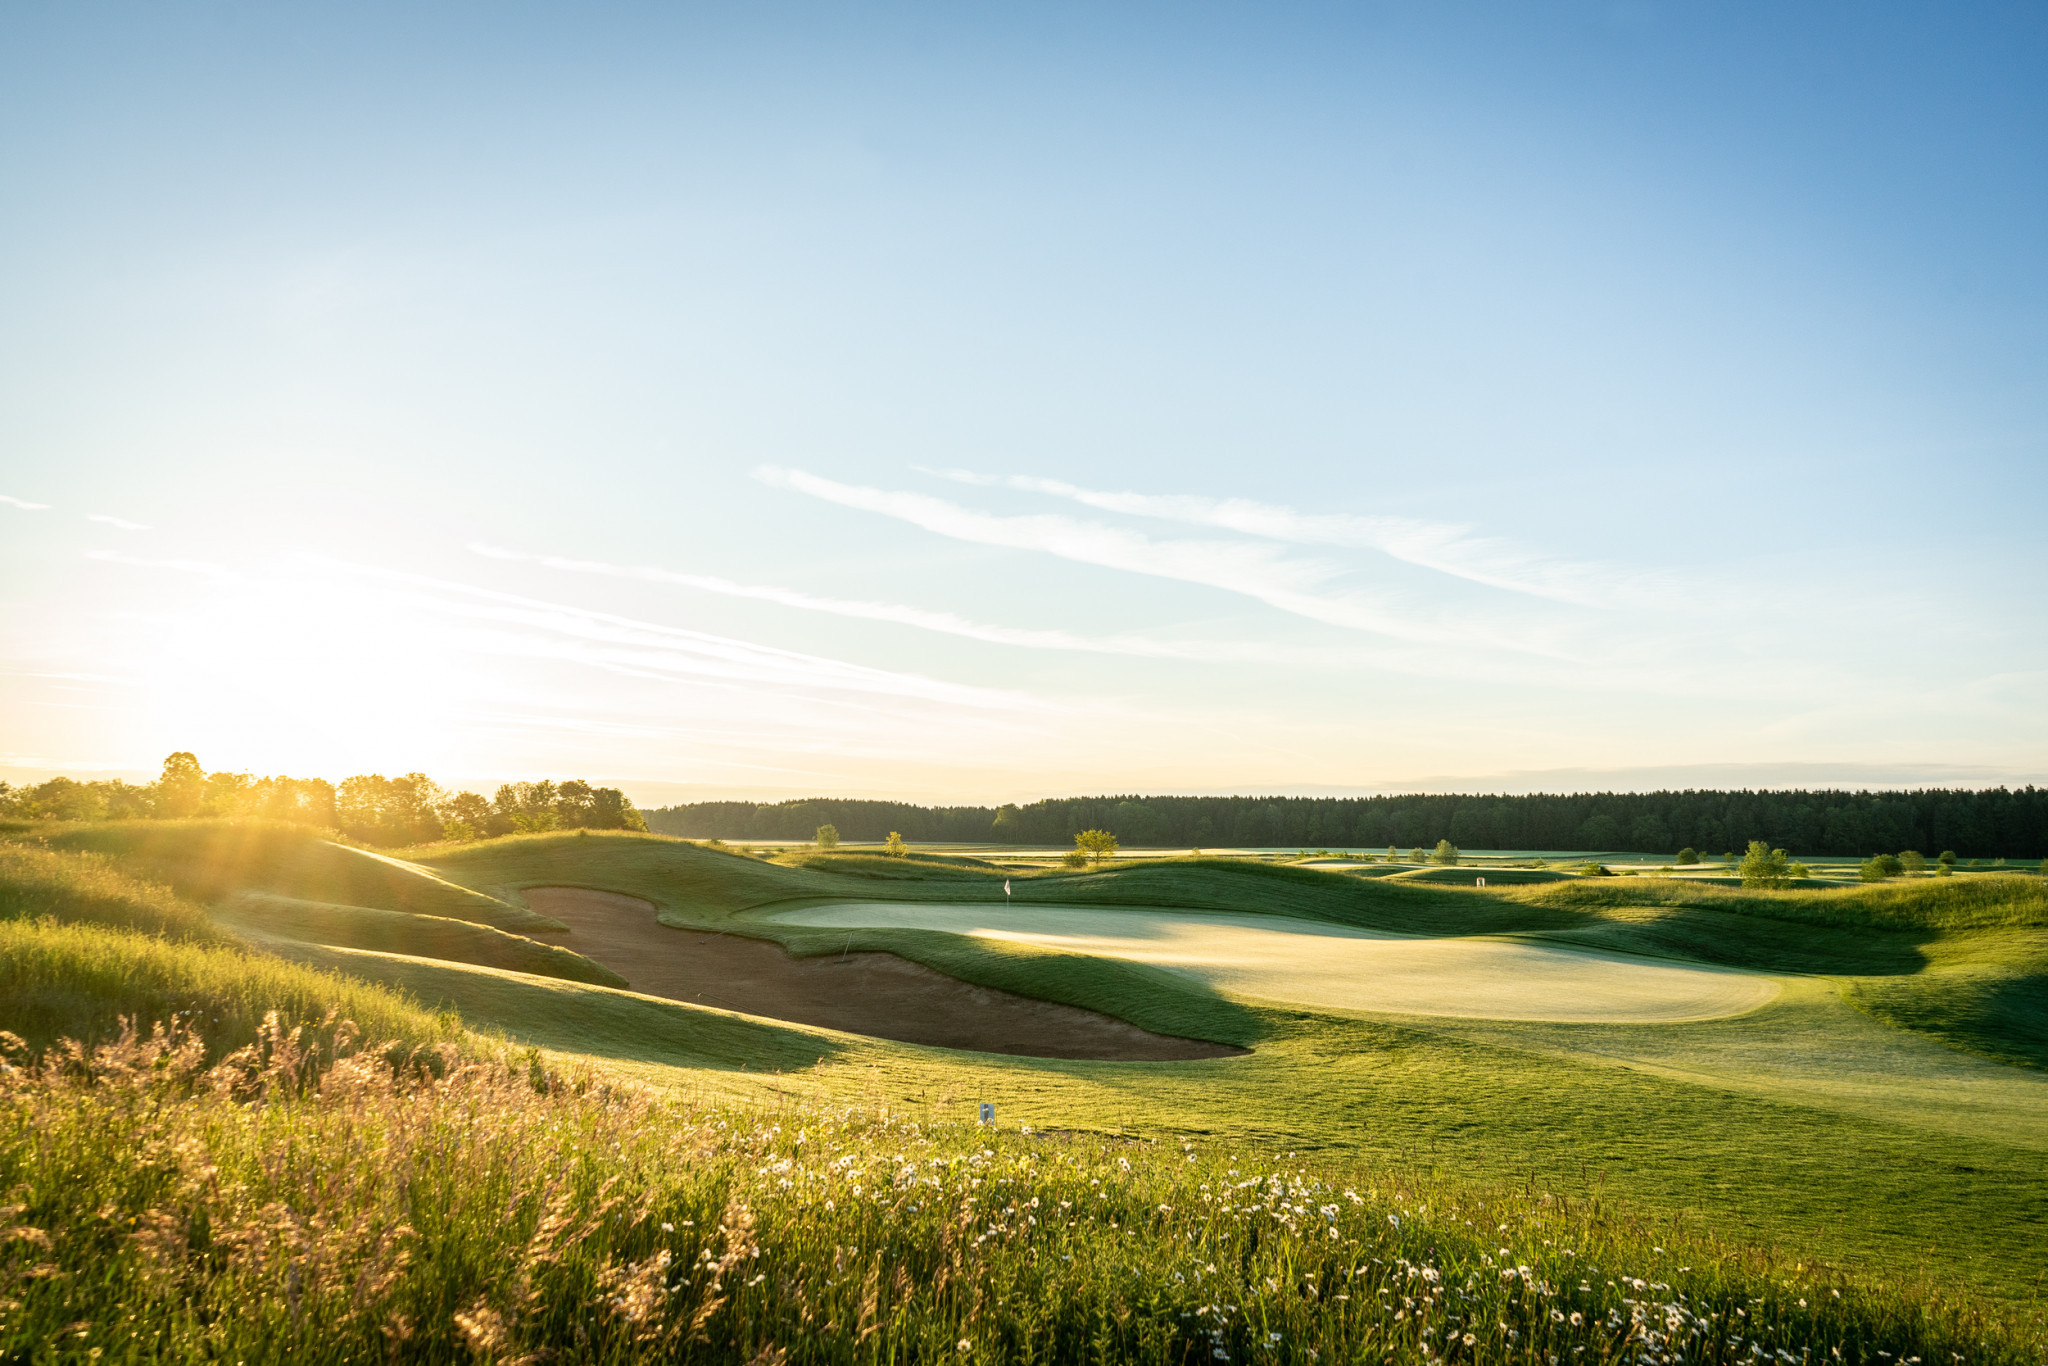 Munich 2022 announce golf course for second European Championships